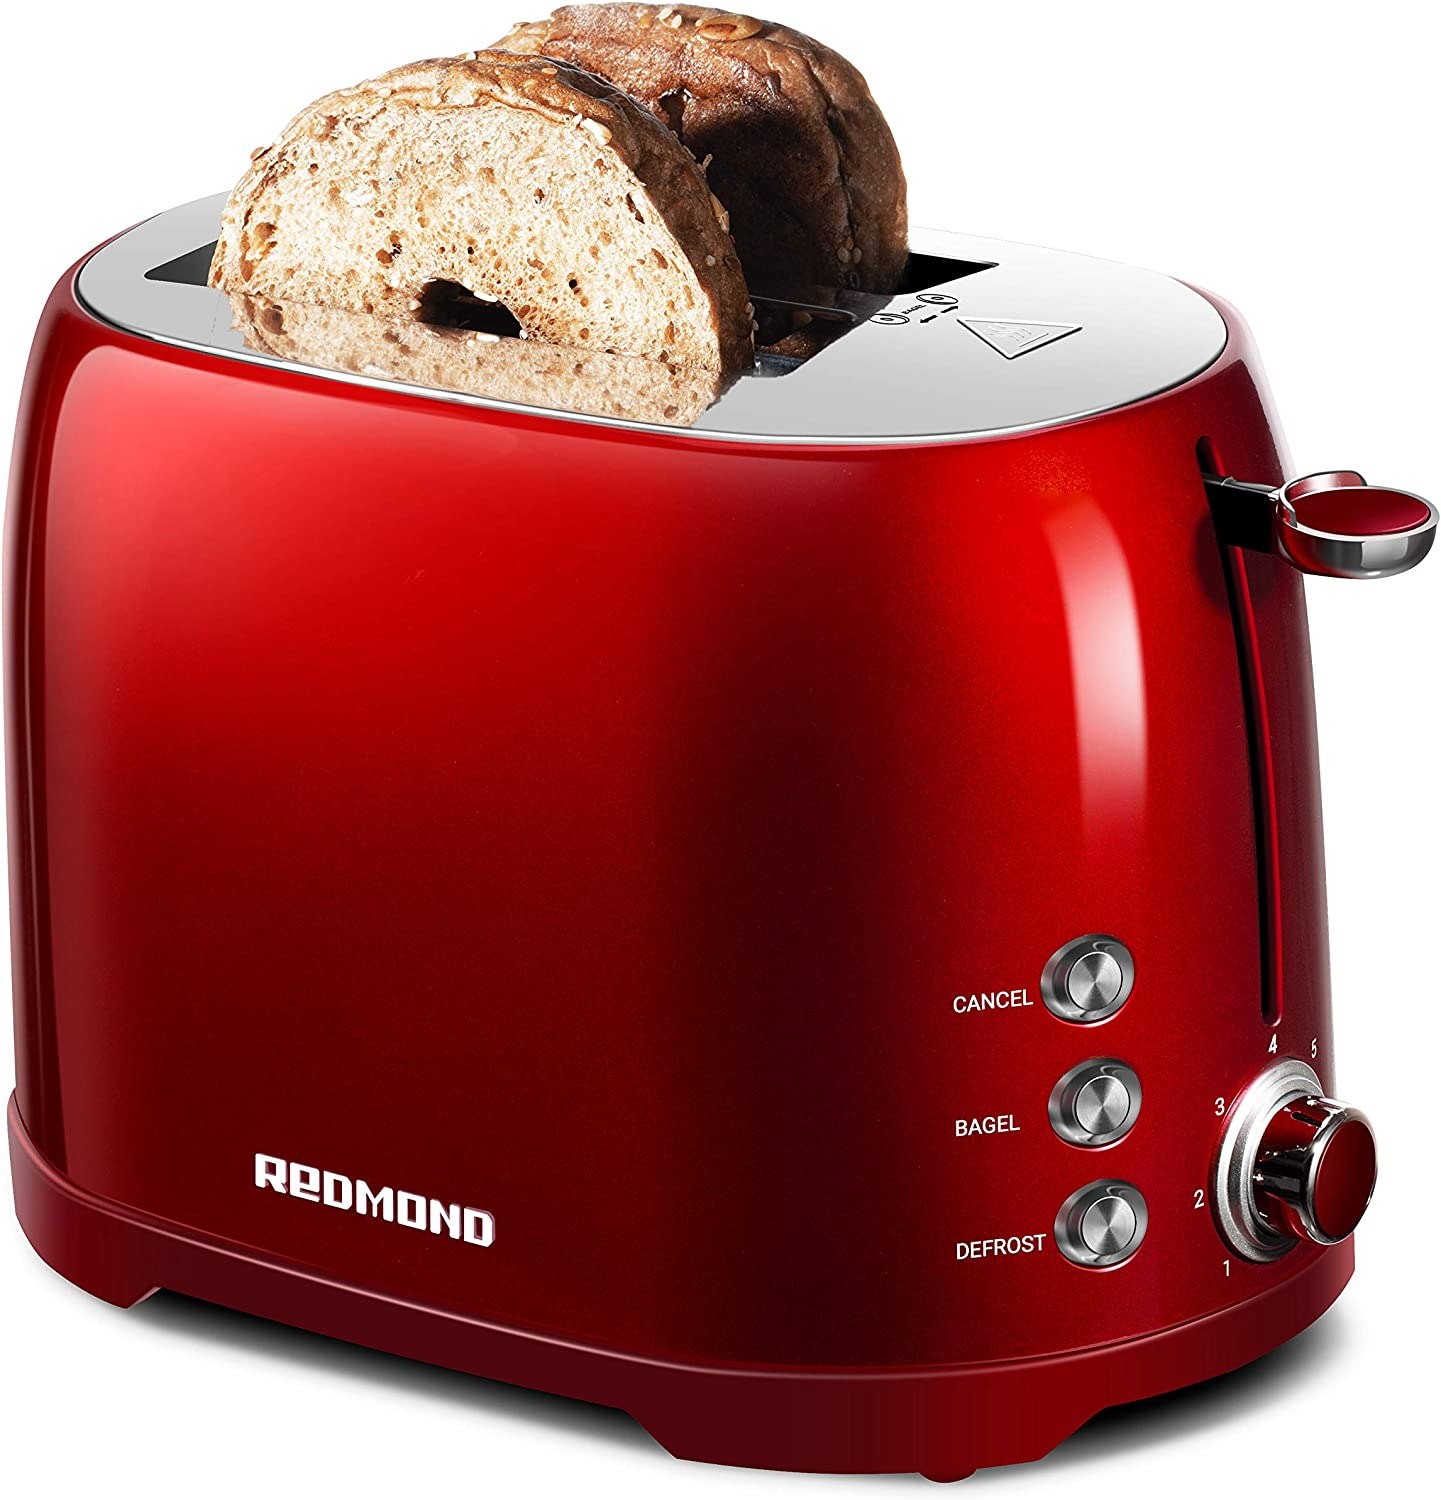 "REDMOND Retro Toaster 2 Slice Stainless Steel Compact Bagel Toaster with 1.5""Extra Wide Slots, 7 Bread Shade Settings, Removable Crumb Tray for Breakfast, 800W (Claret Red)"